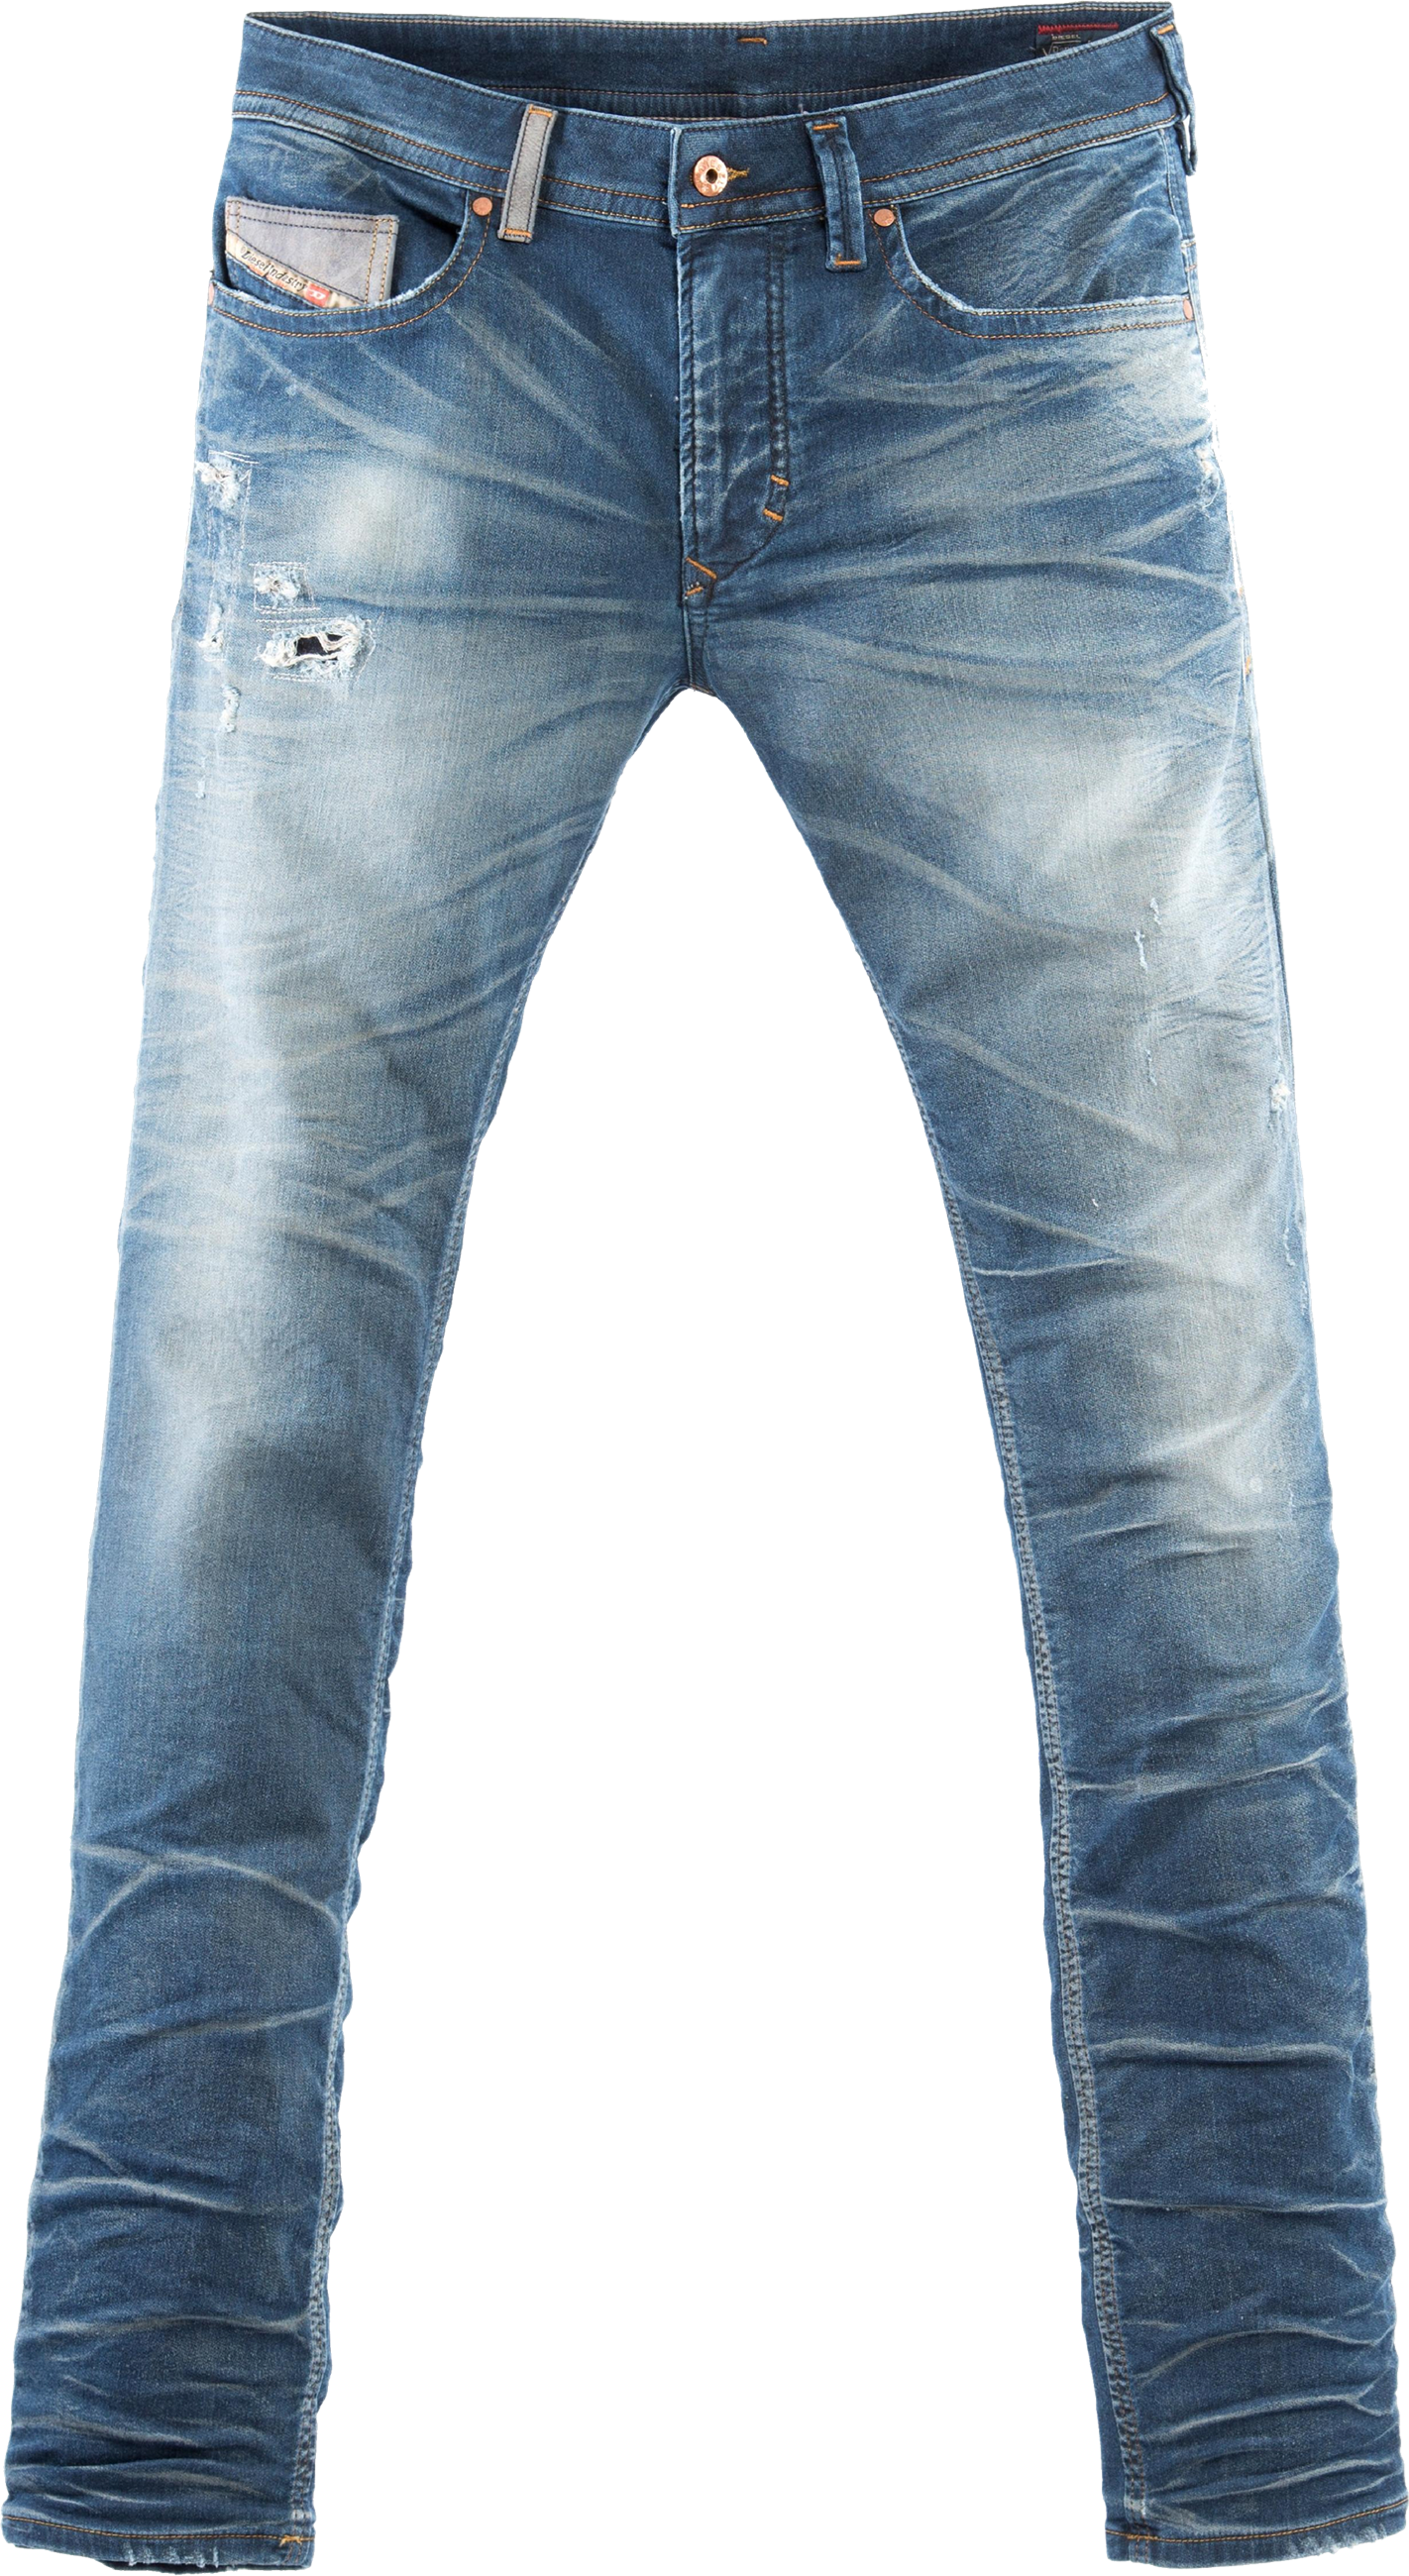 jeans_png5767